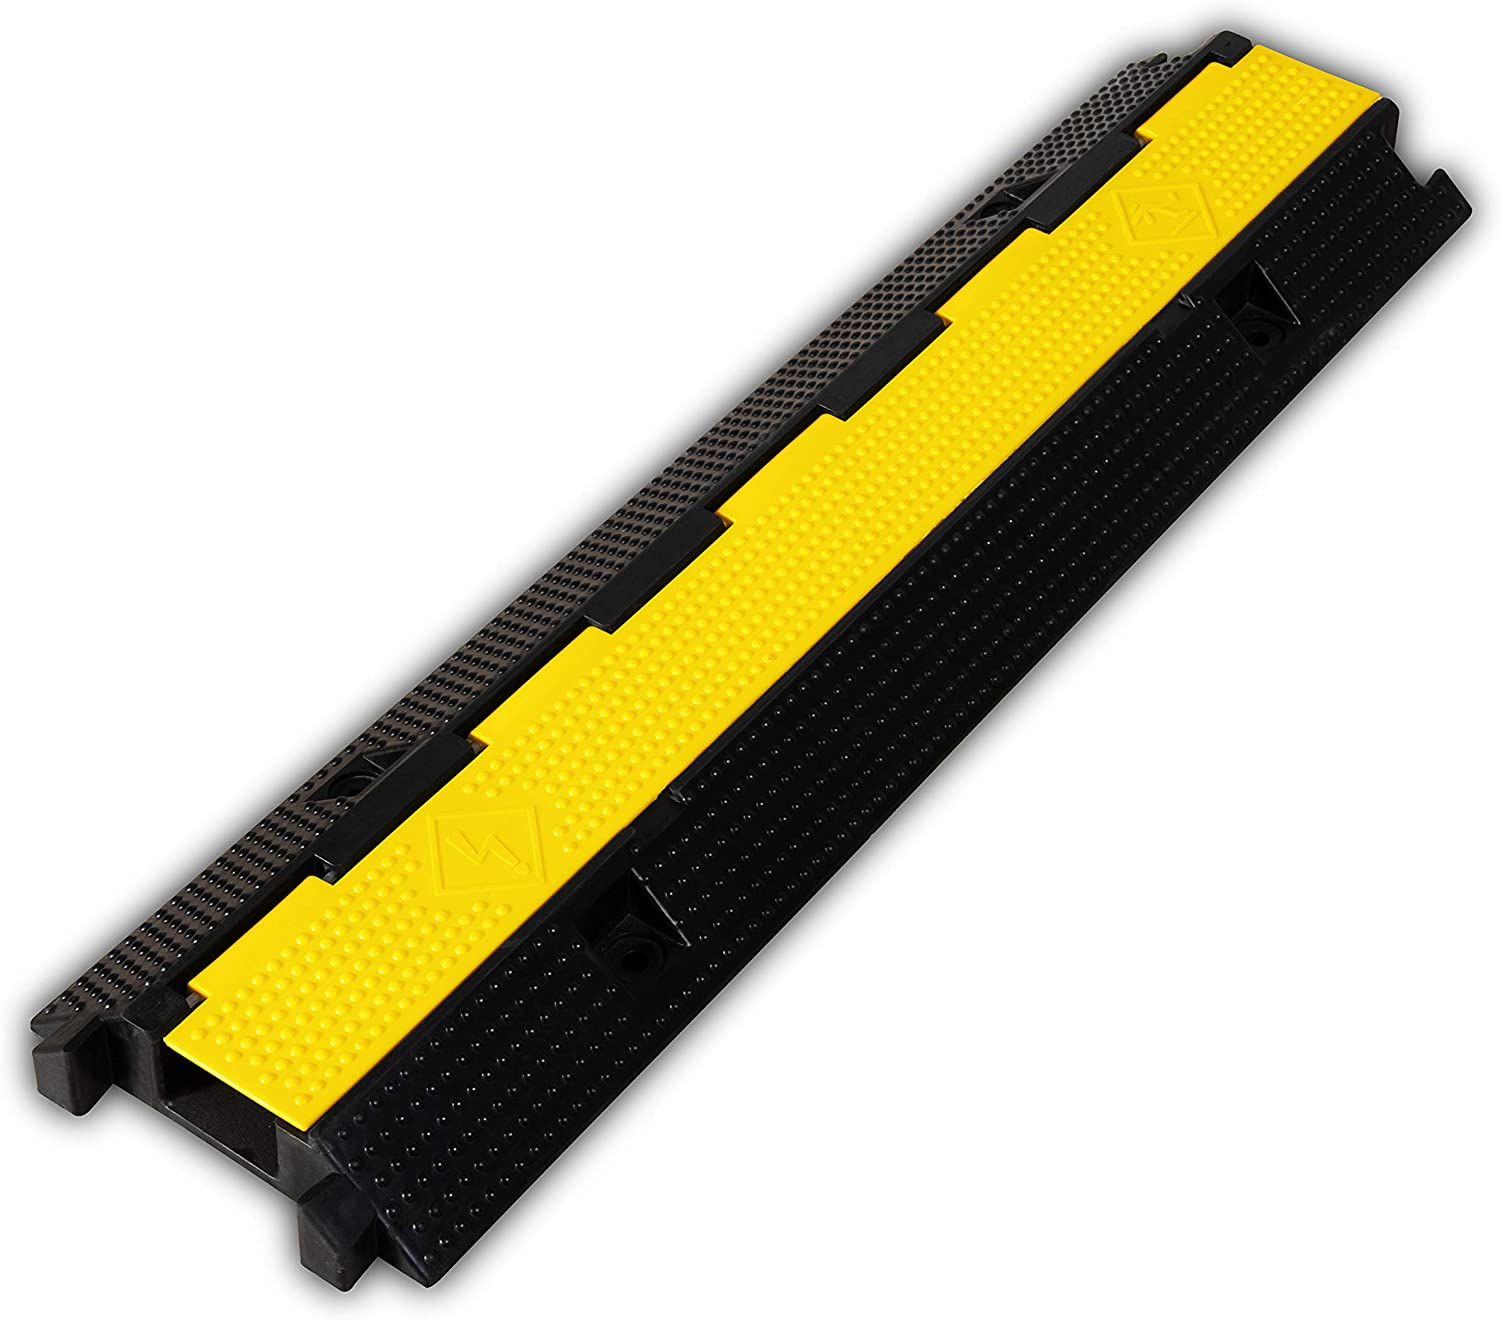 F COME 1 Pack Rubber Cable Ramp Hose Cable Protector Ramp 1 Channel 22000Lbs Load Capacity Traffic Speed Bump Wires Power Lines Extension Cord Cover for Indoor Outdoor